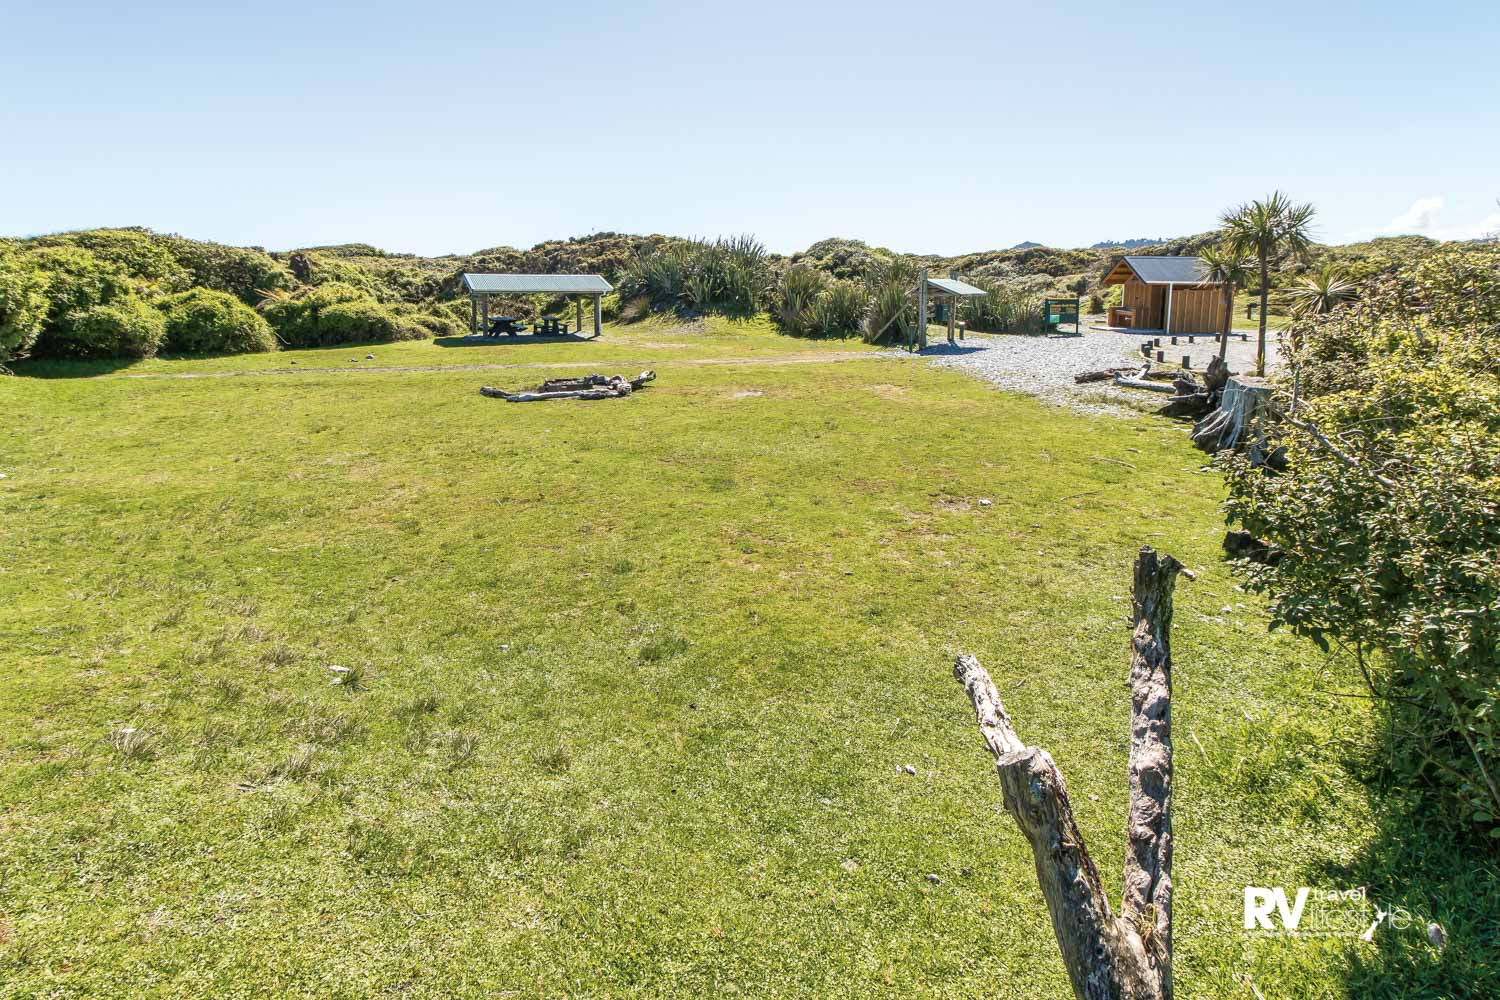 Big open spaces and large grassy areas at Gillespies Beach campground